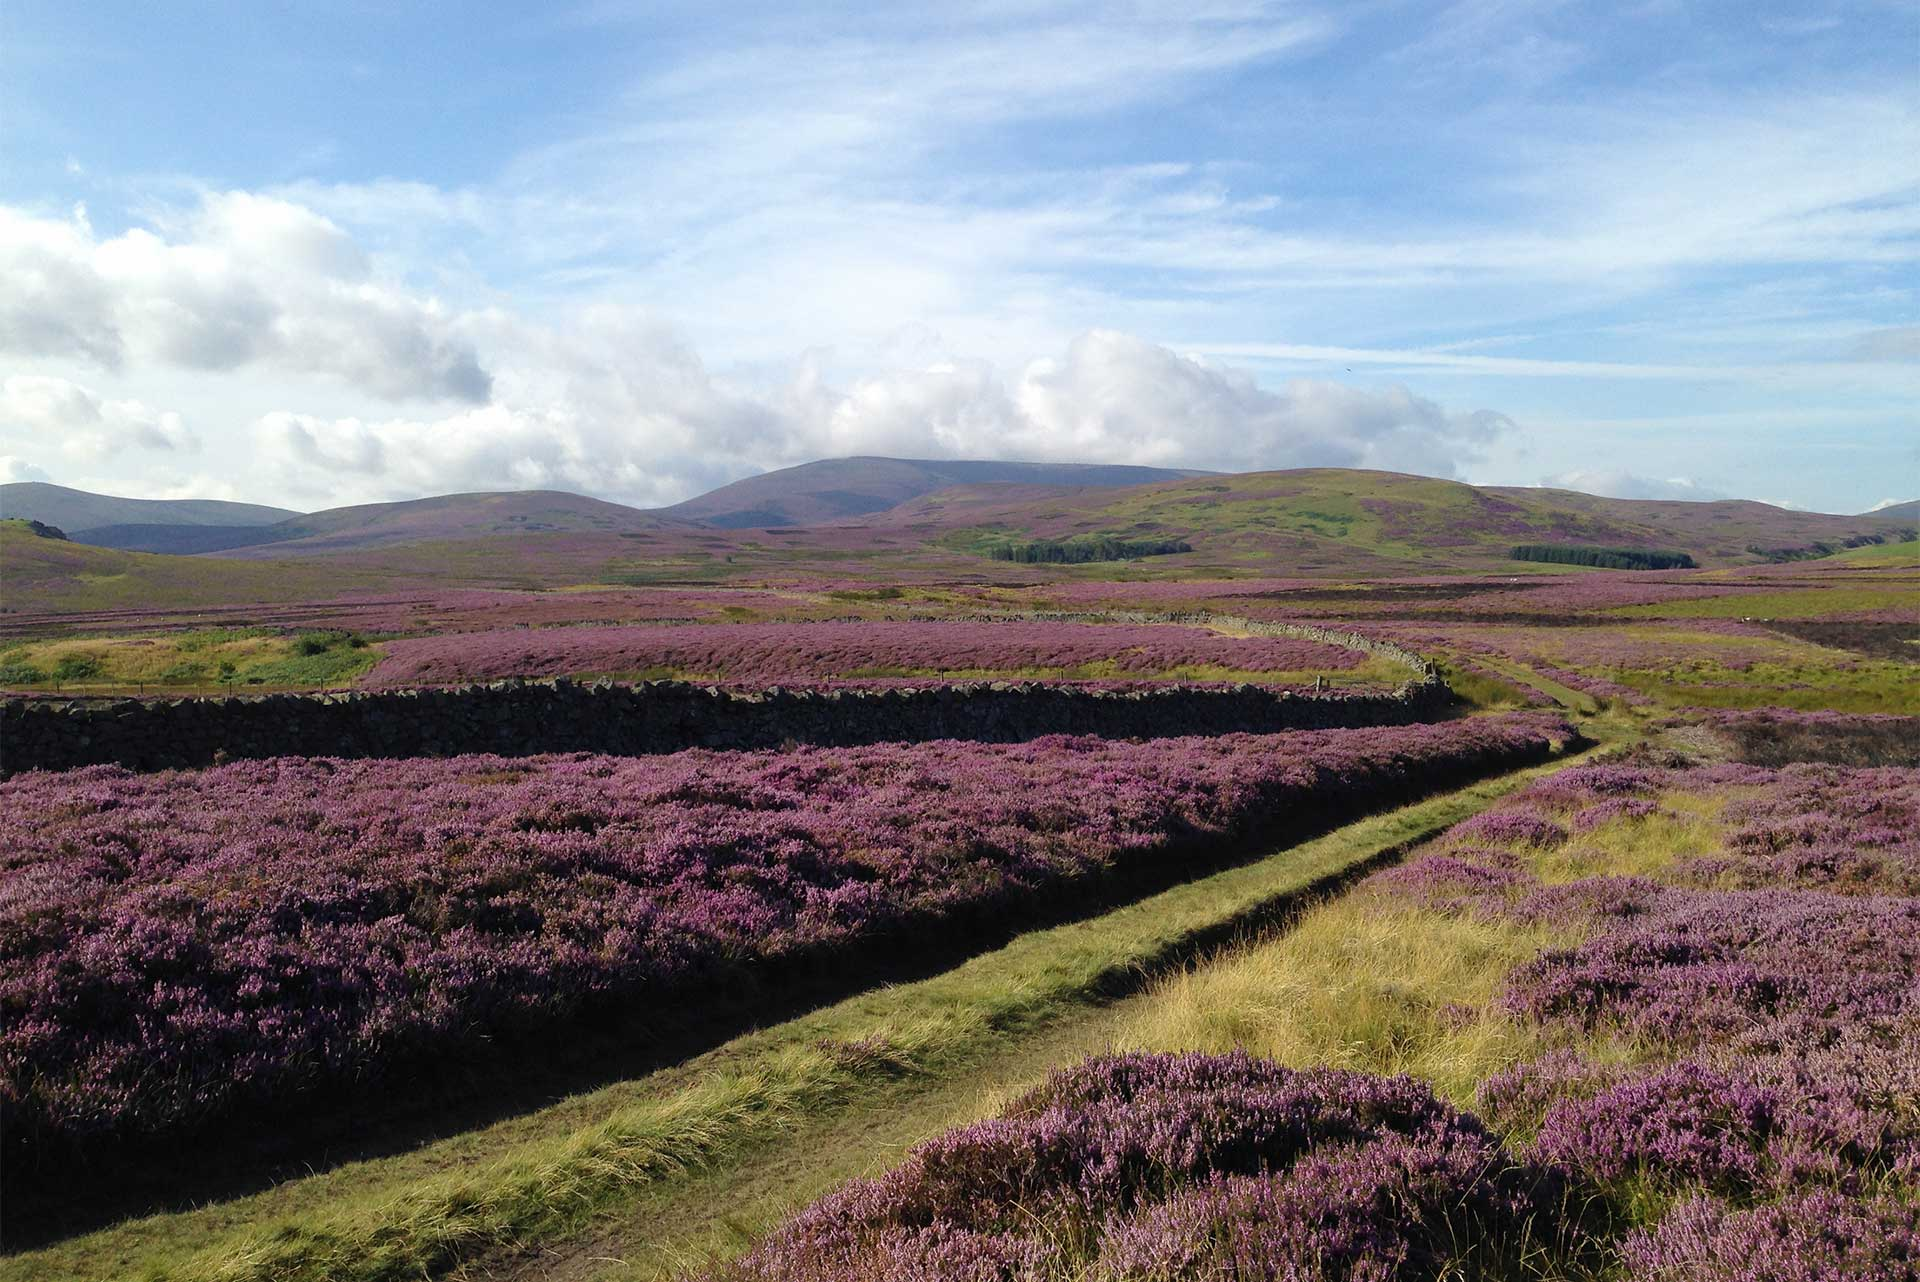 Heather in bloom on hill path